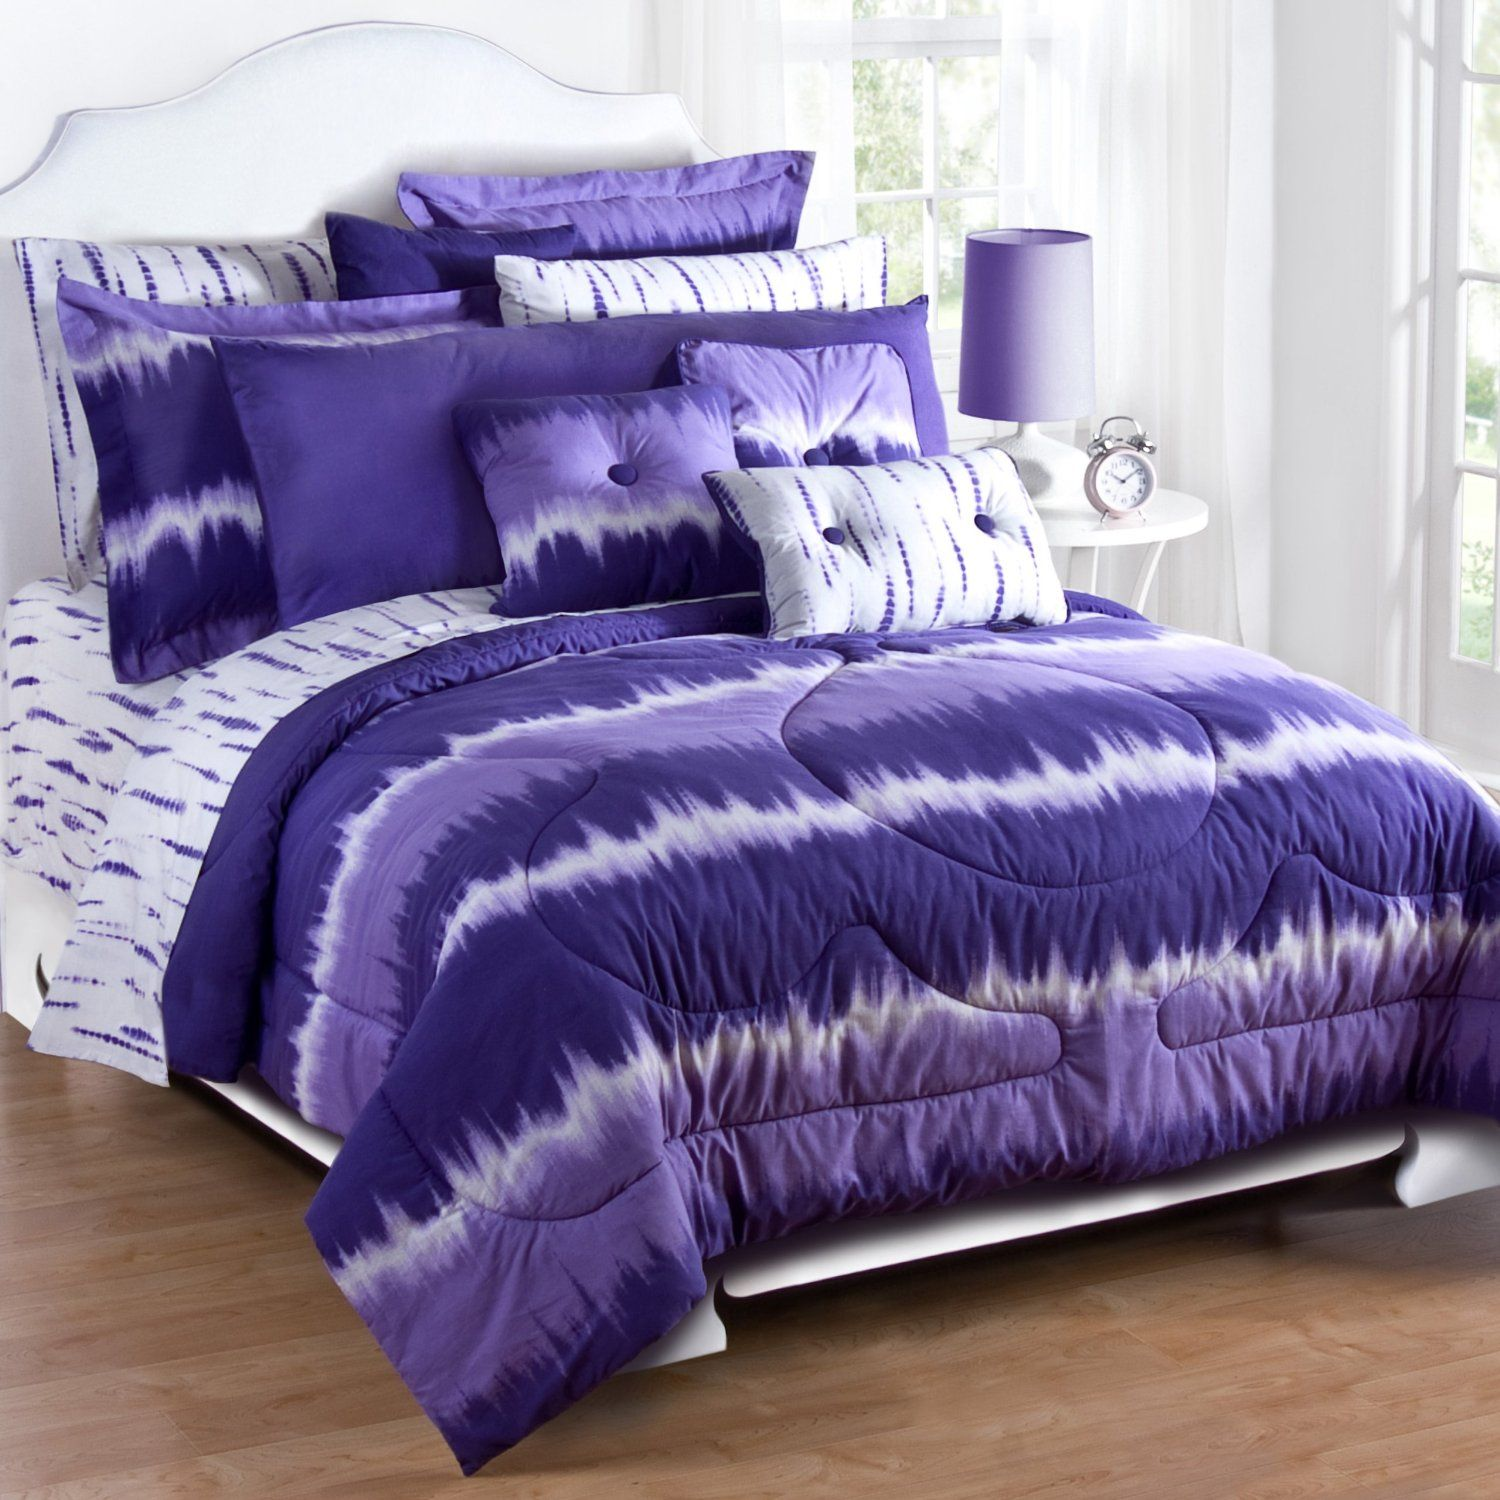 Purple tie dye comforter set omg i want this